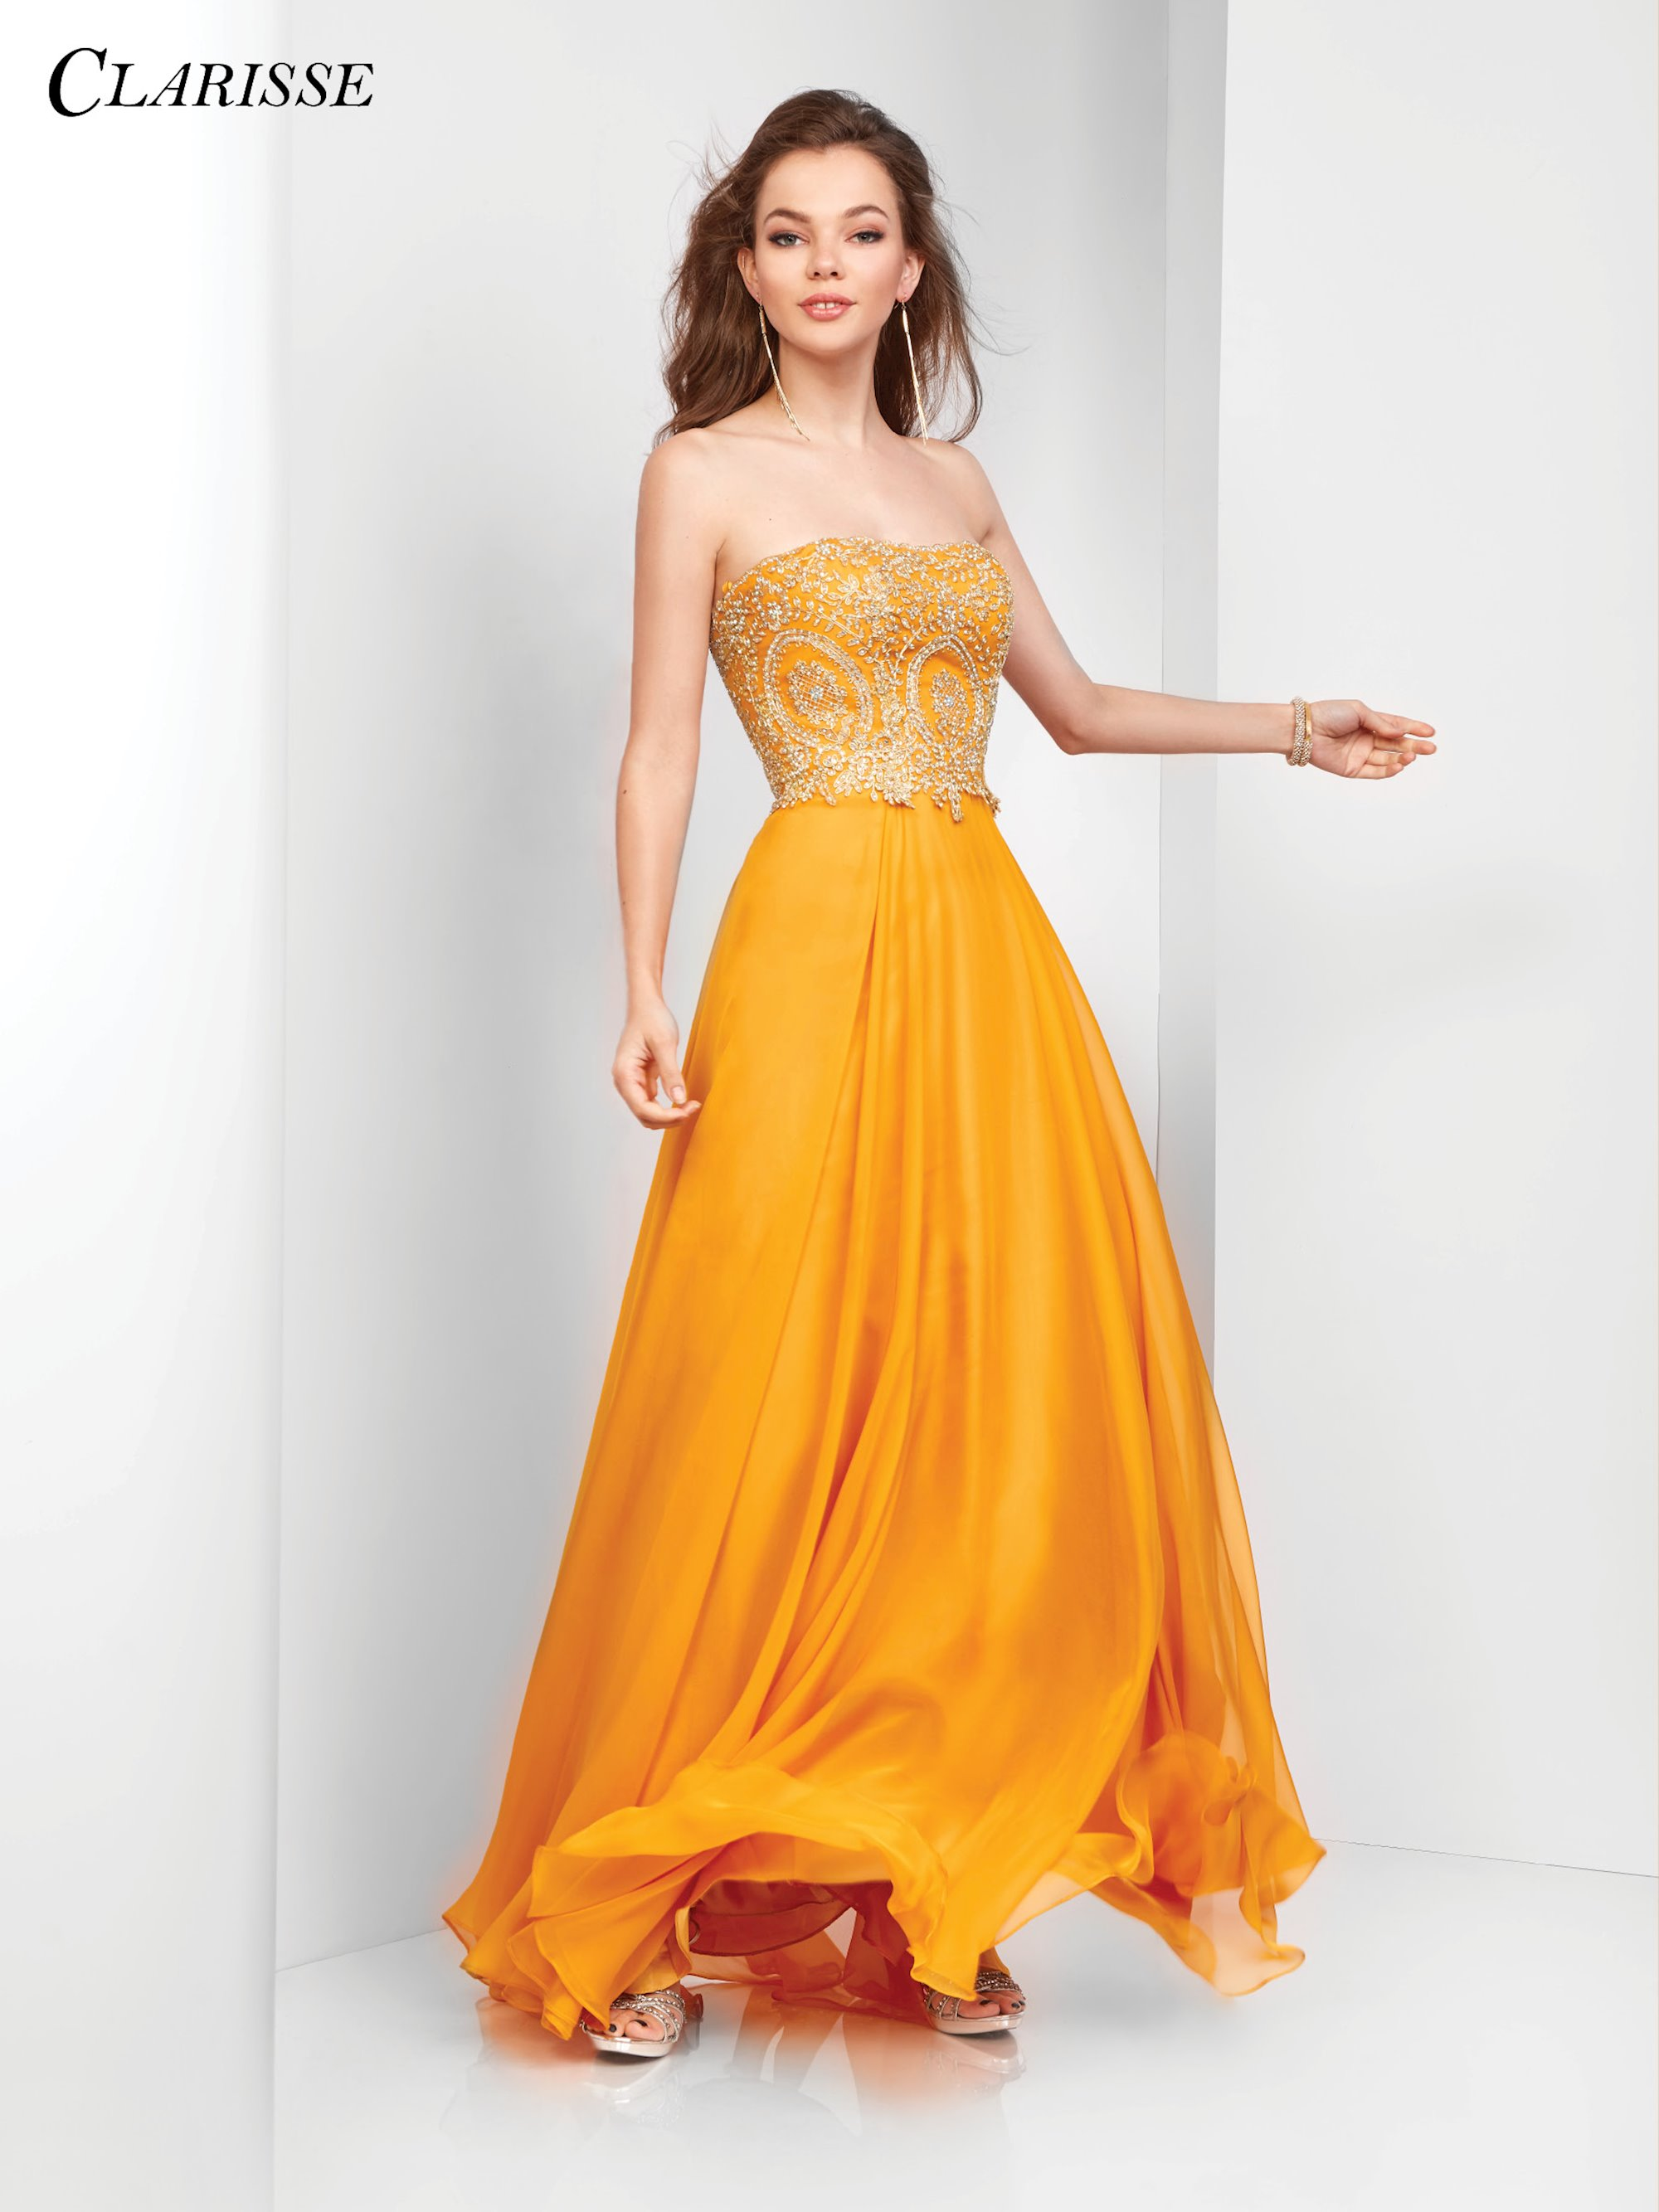 6daa3f67020 Clarisse - 3000 Prom Dresses and Gowns